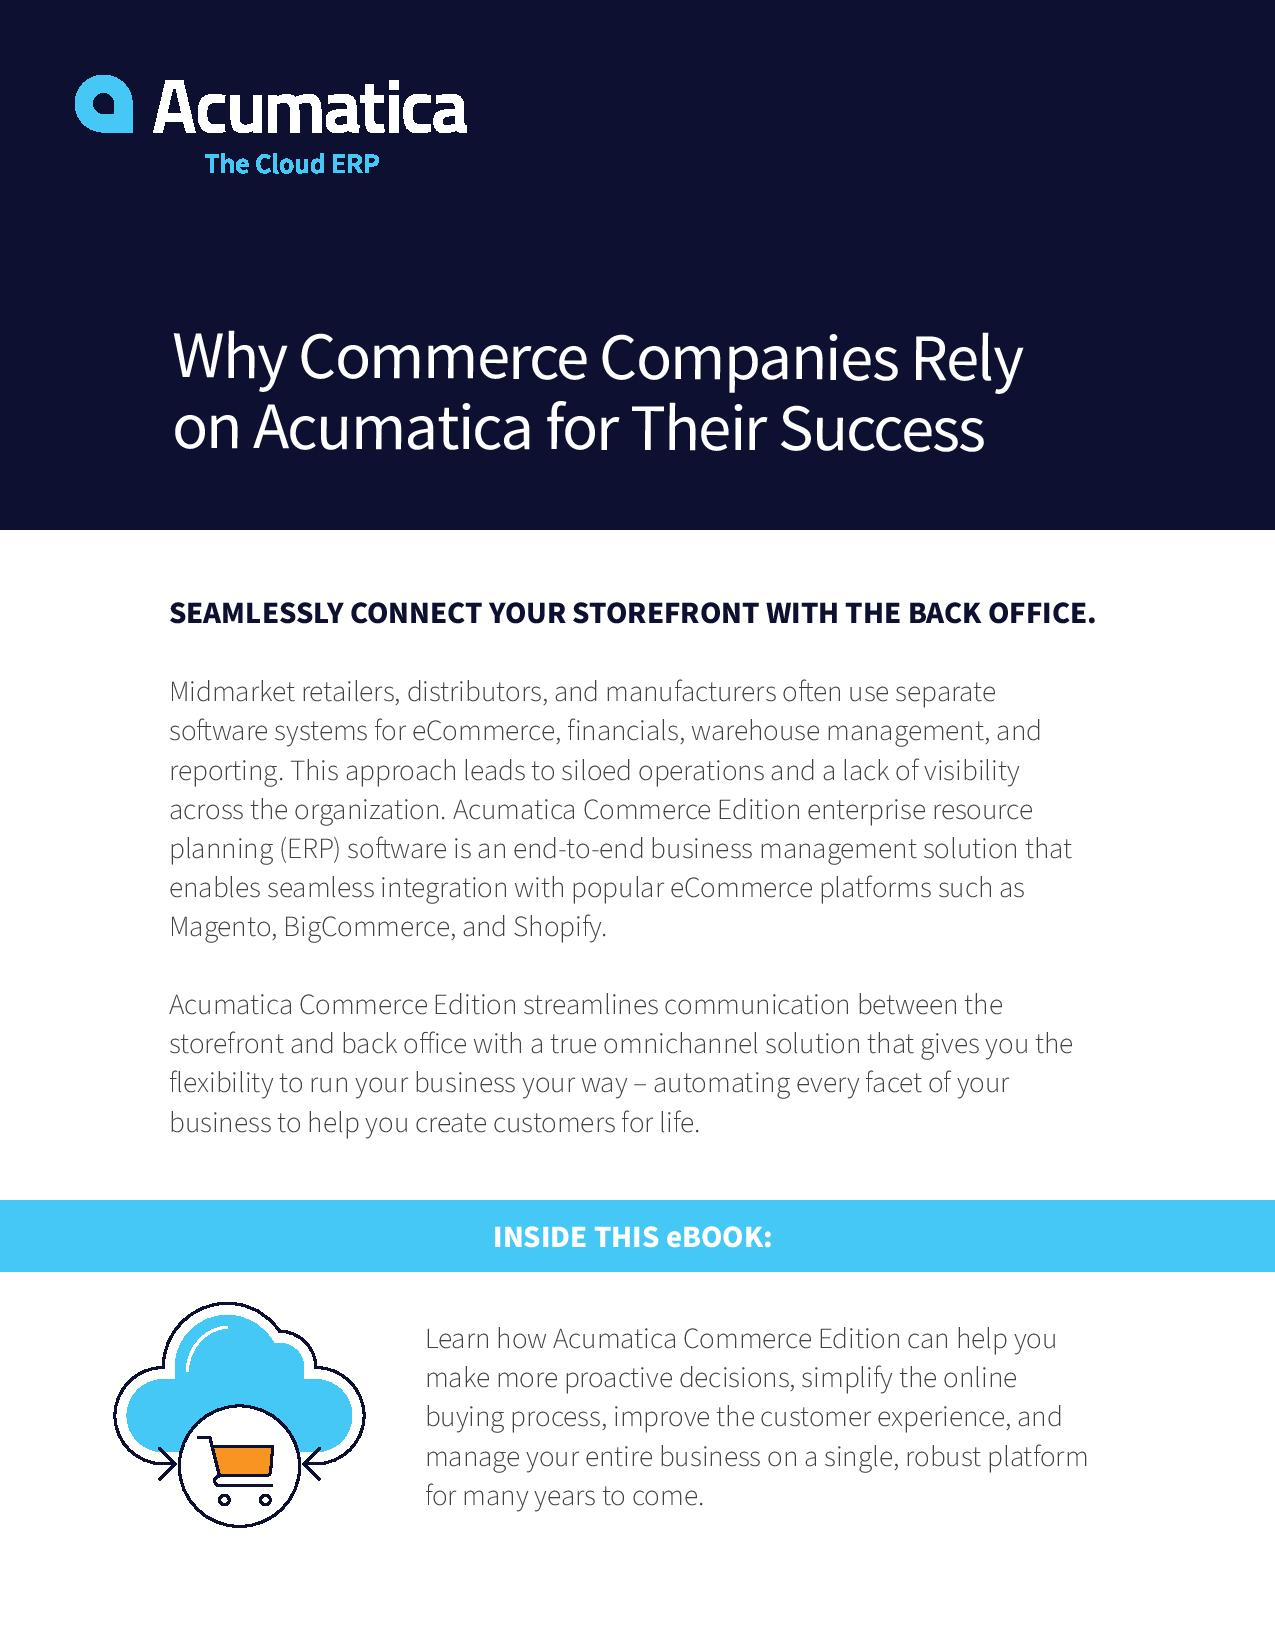 How Can the Acumatica eCommerce Platform Help Your Online Business Grow?, page 0